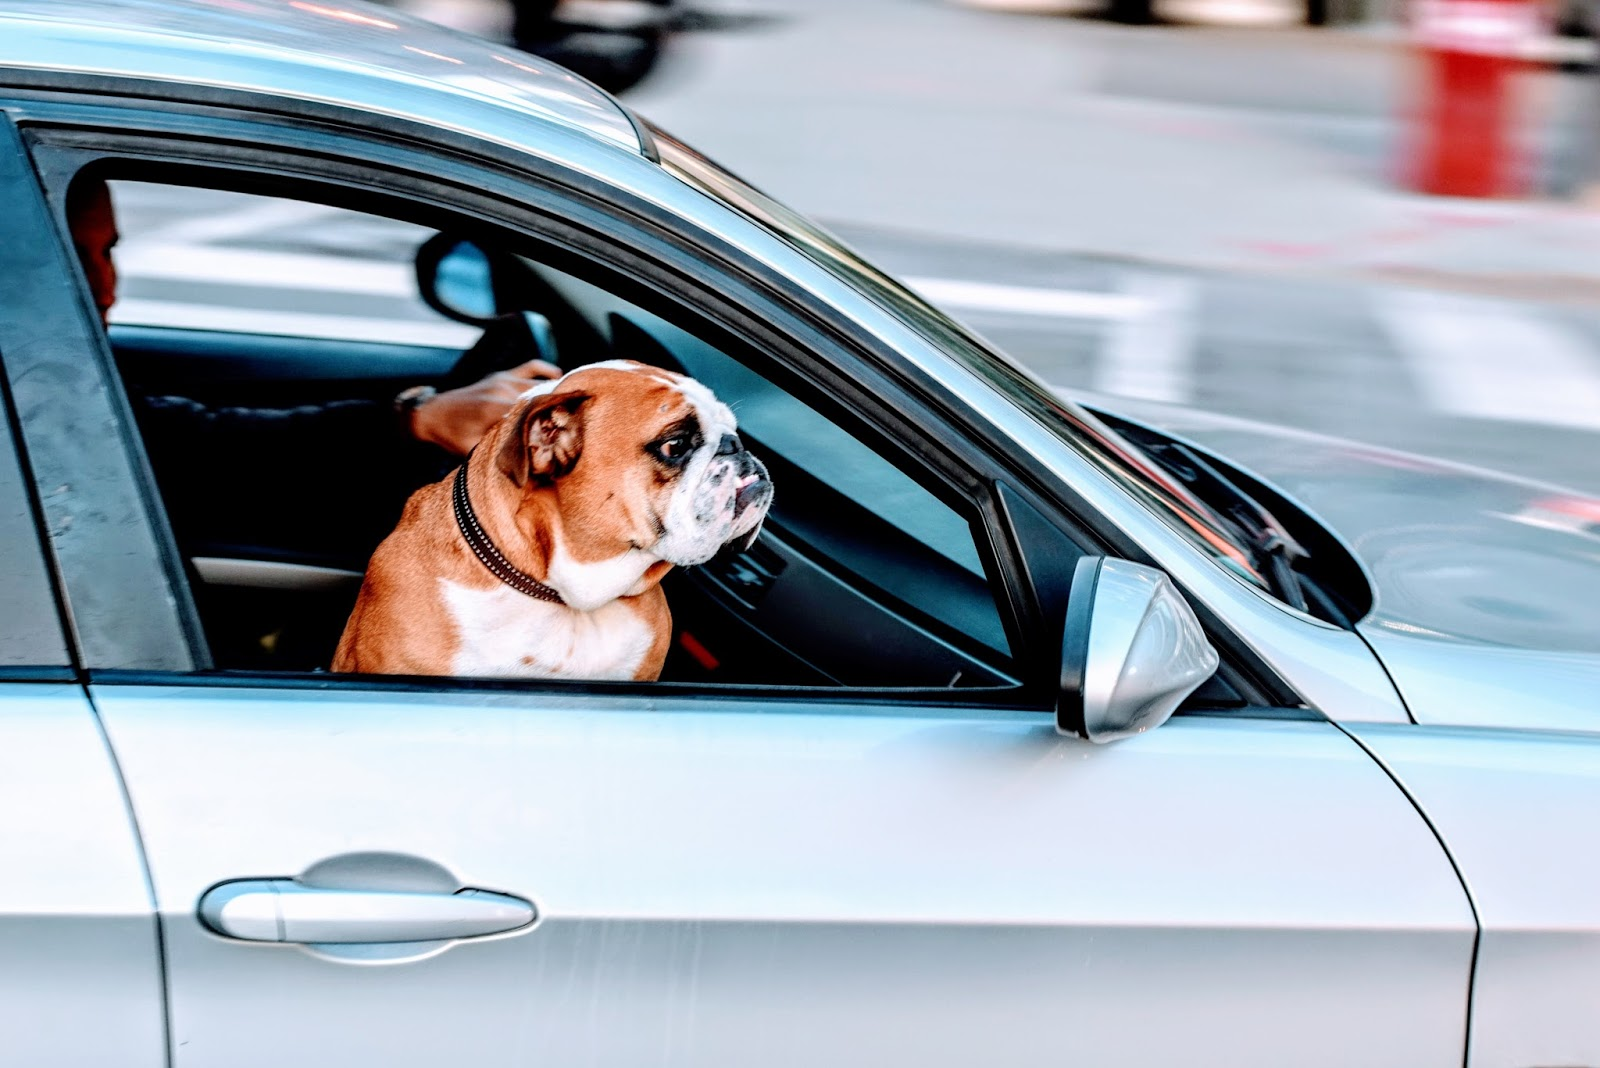 pug in the front seat of a car